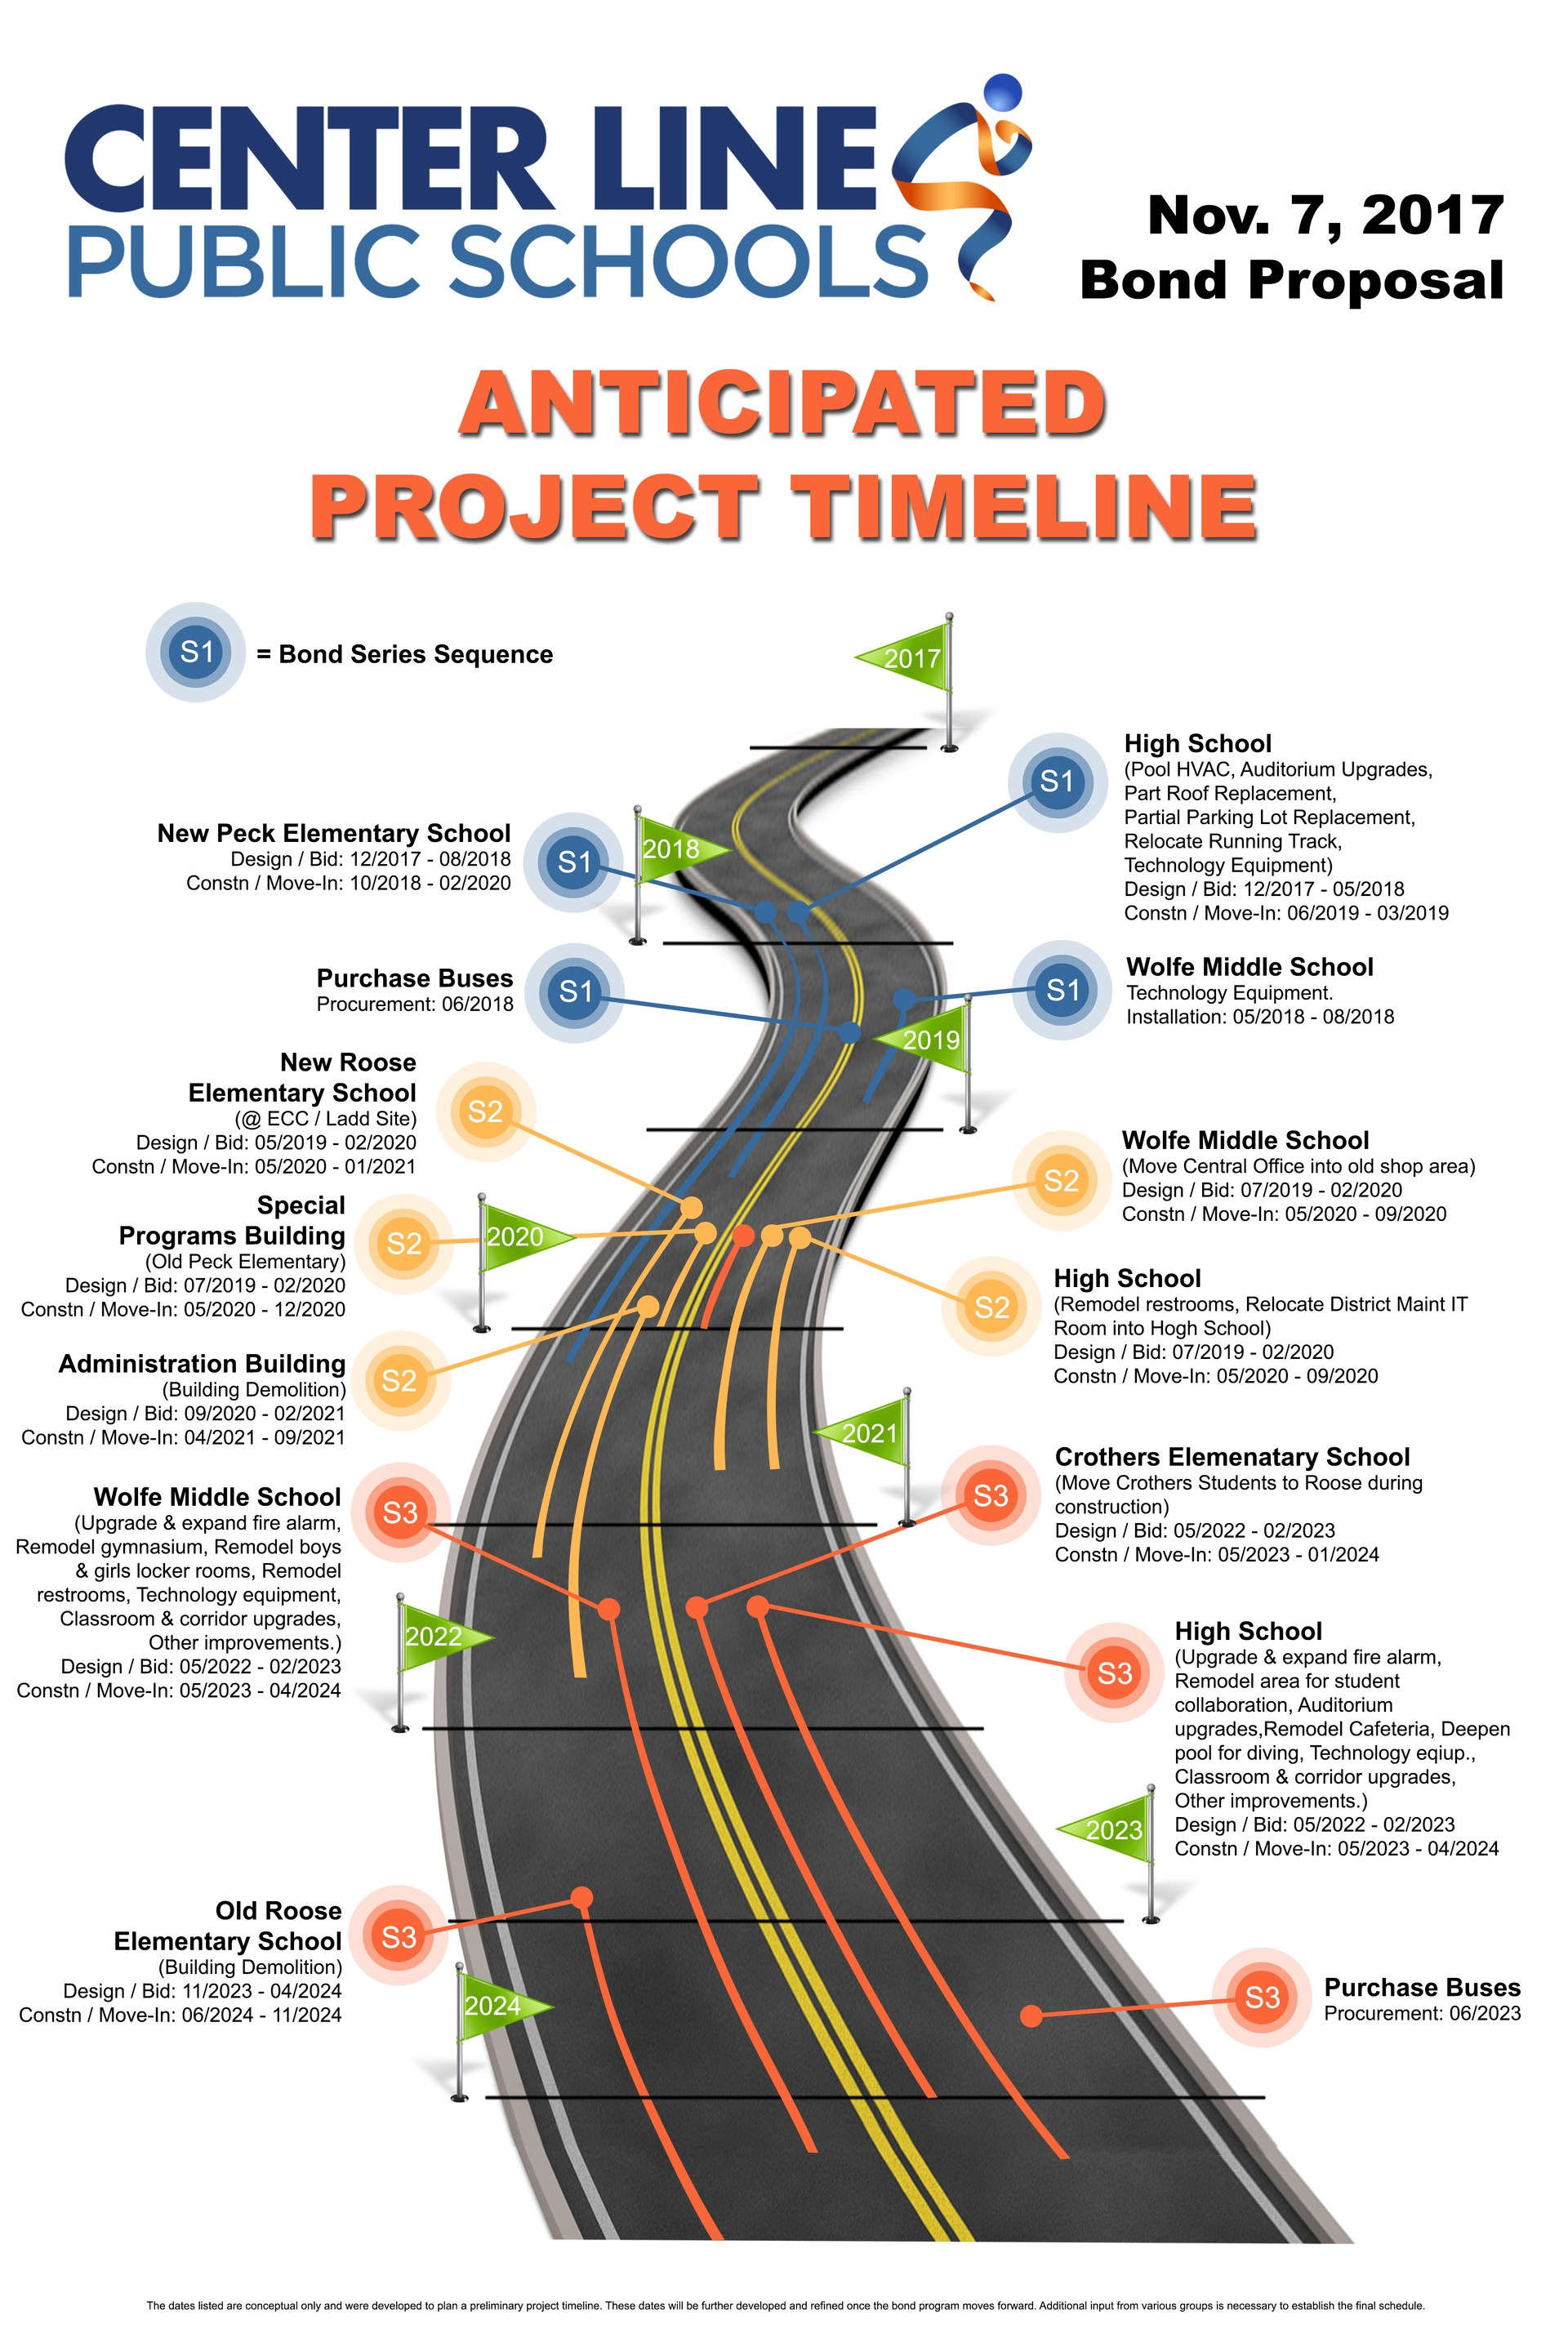 Project timeline for Center Line bond work in three phases